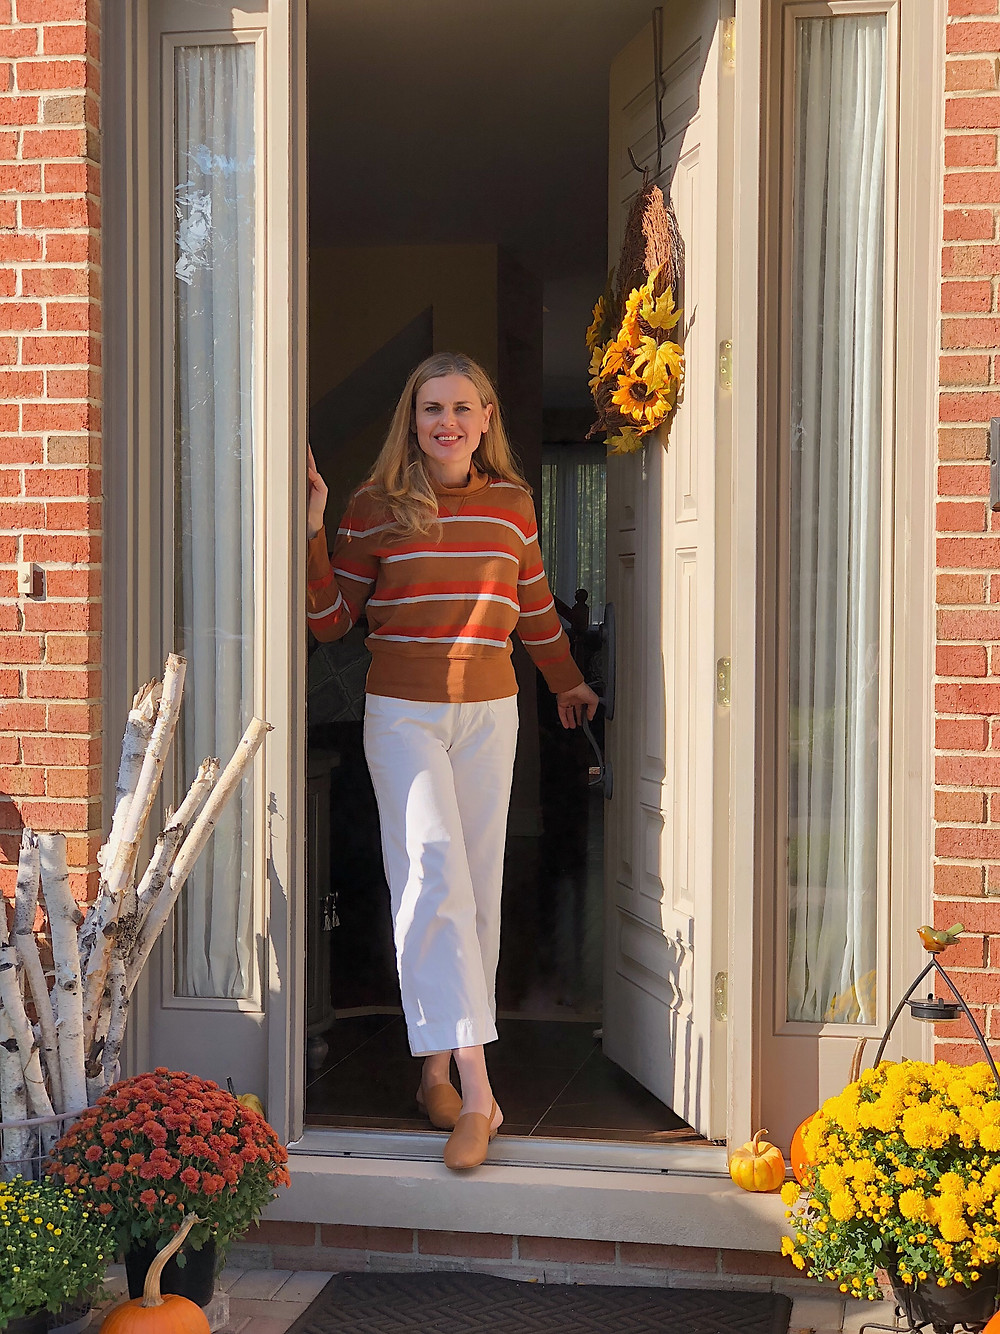 blond woman in doorway decorated for fall